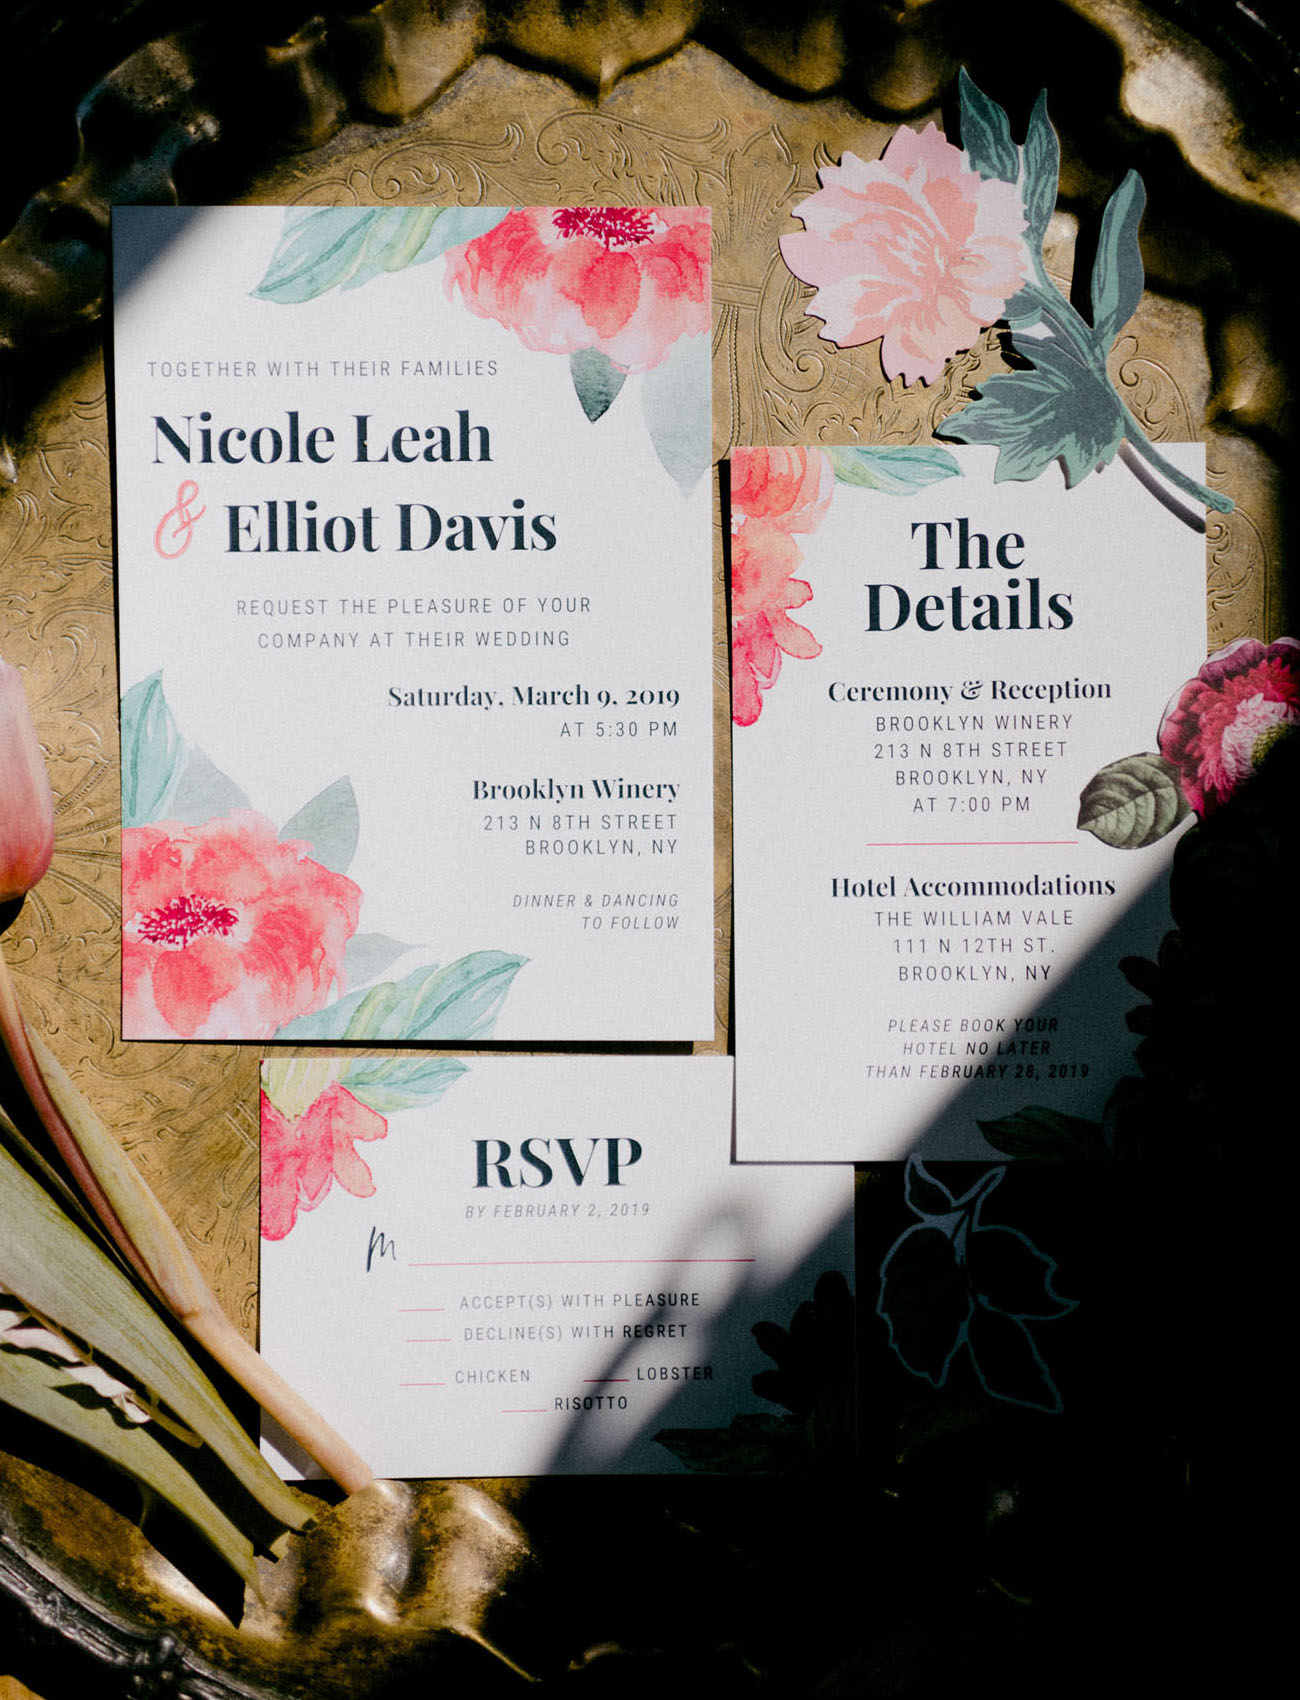 The wedding invites hinted on bright pink shades that were used in home decor